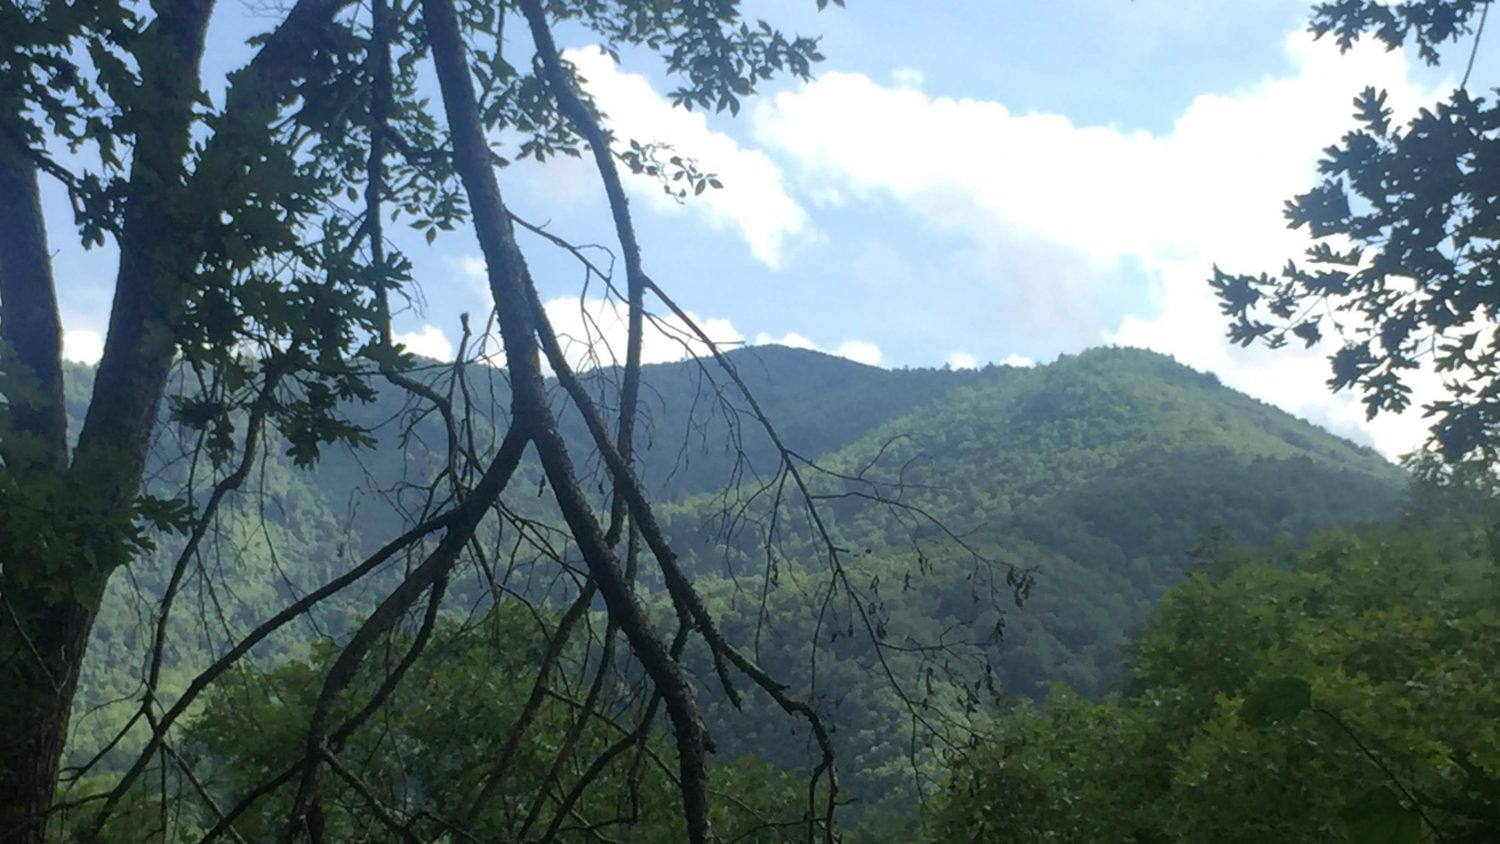 A view of vibrant green forested mountains.